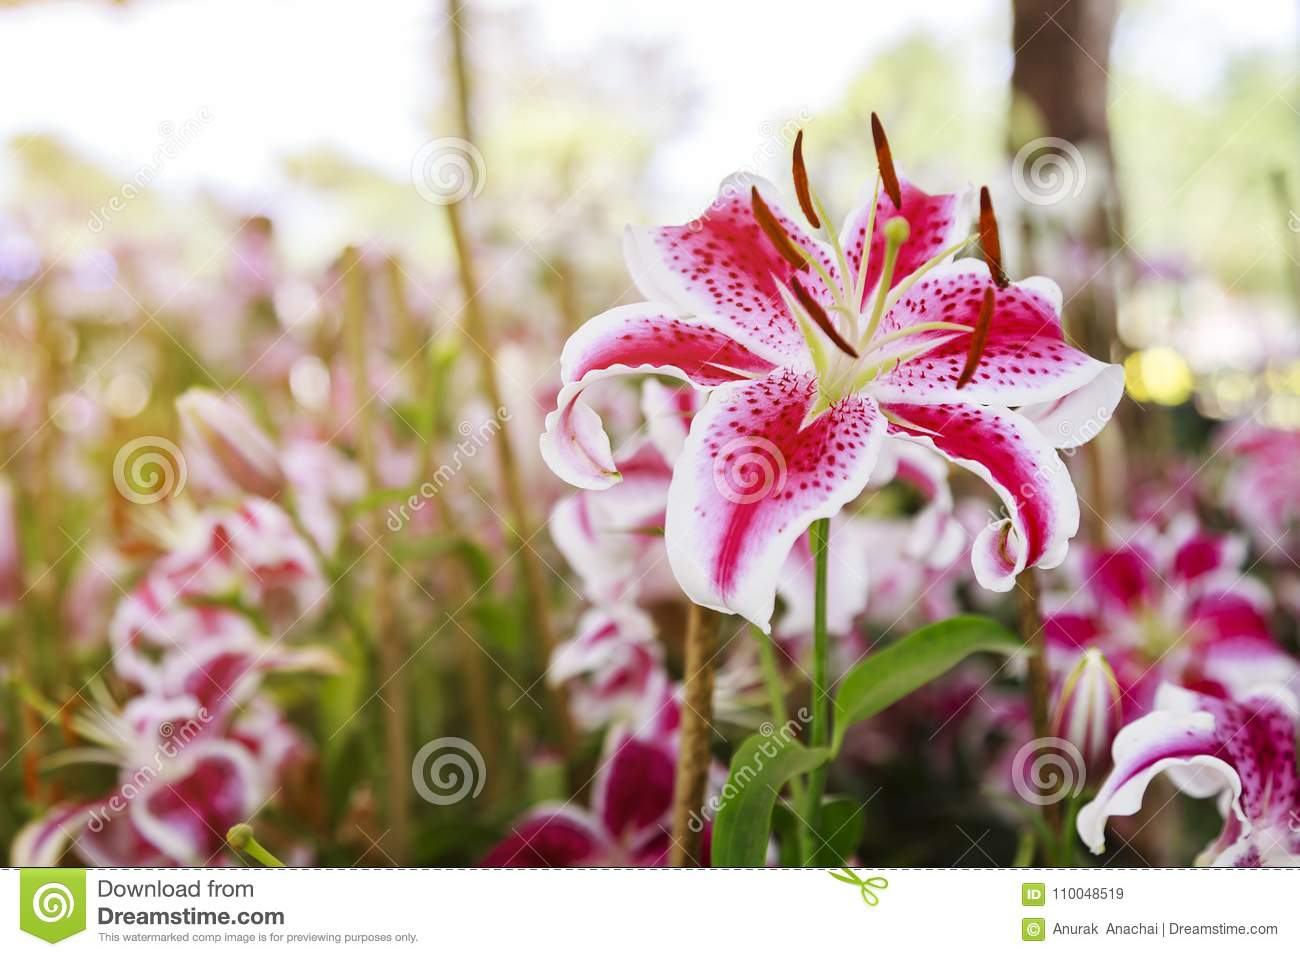 Pink lilies flower close up stock image image of outdoor flower download pink lilies flower close up stock image image of outdoor flower 110048519 izmirmasajfo